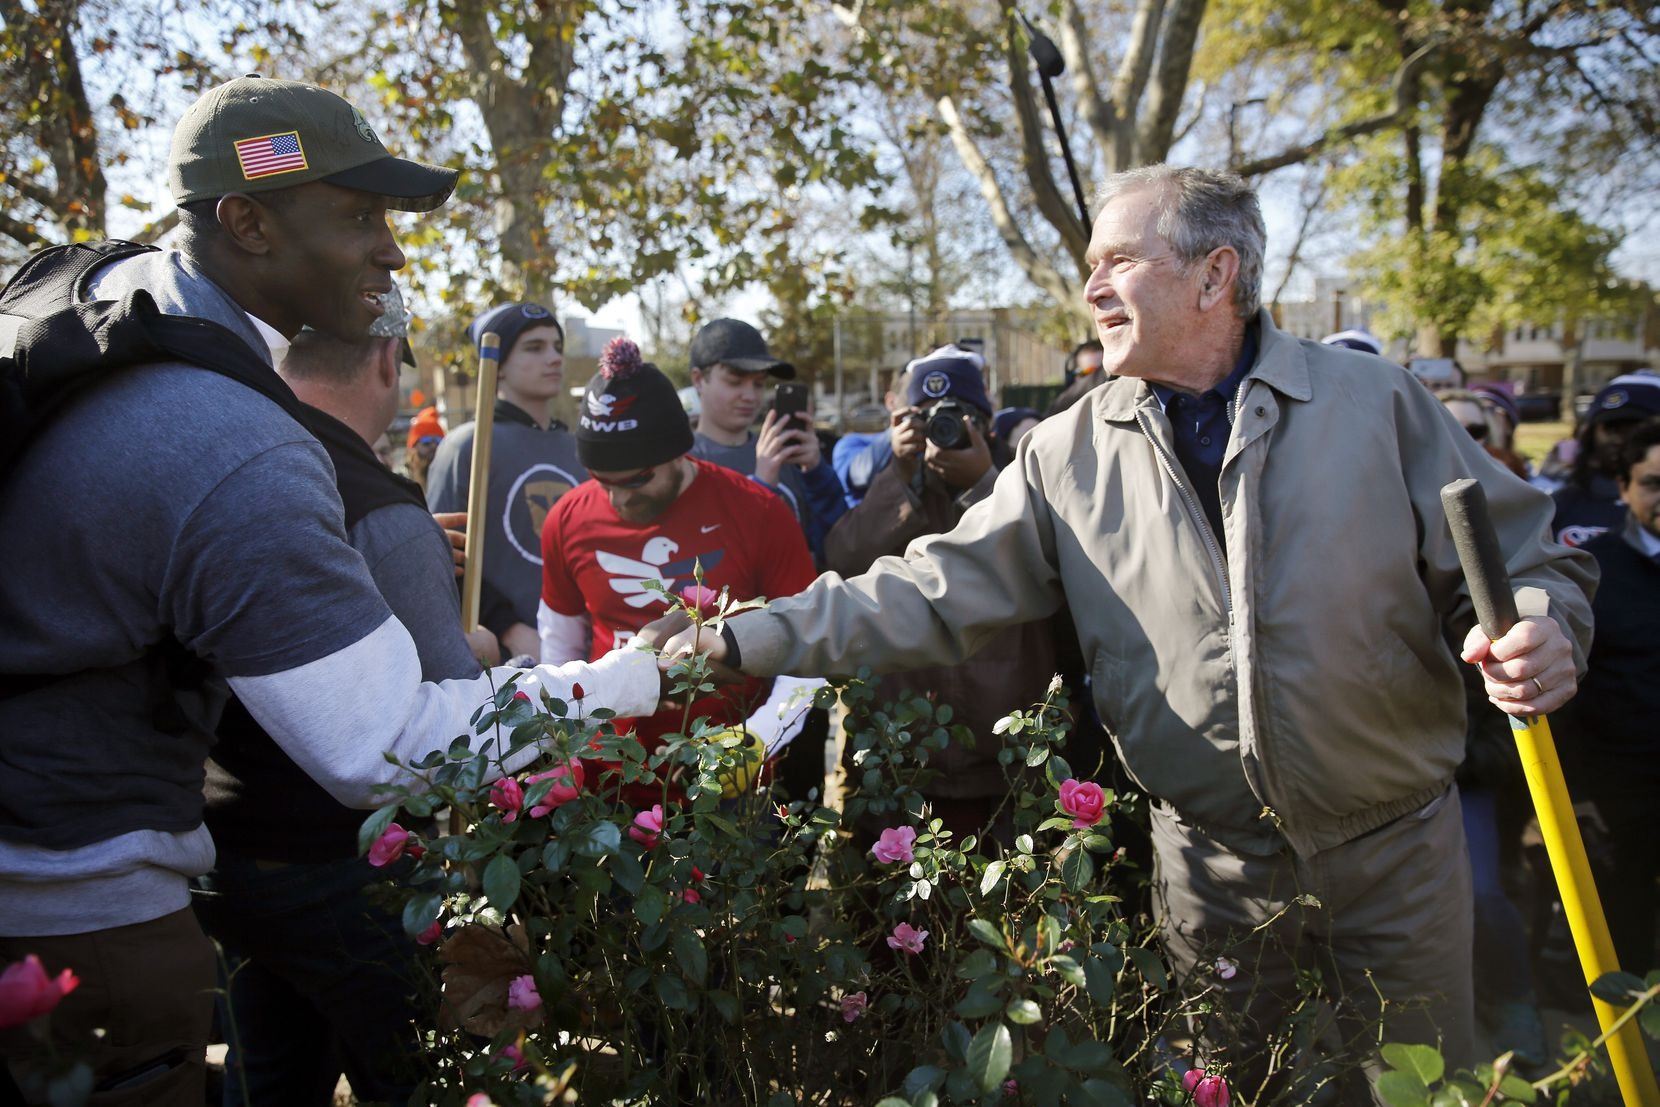 Former President George W. Bush shakes hands and thanks veteran Navy submarine officer Joshua Stewart, who was planting dogwood trees during a Veterans Day landscaping project Sunday in Philadelphia's Point Breeze neighborhood.  Stewart is part of a group of veterans who serve as Character Does Matter mentors for the Travis Manion Foundation.